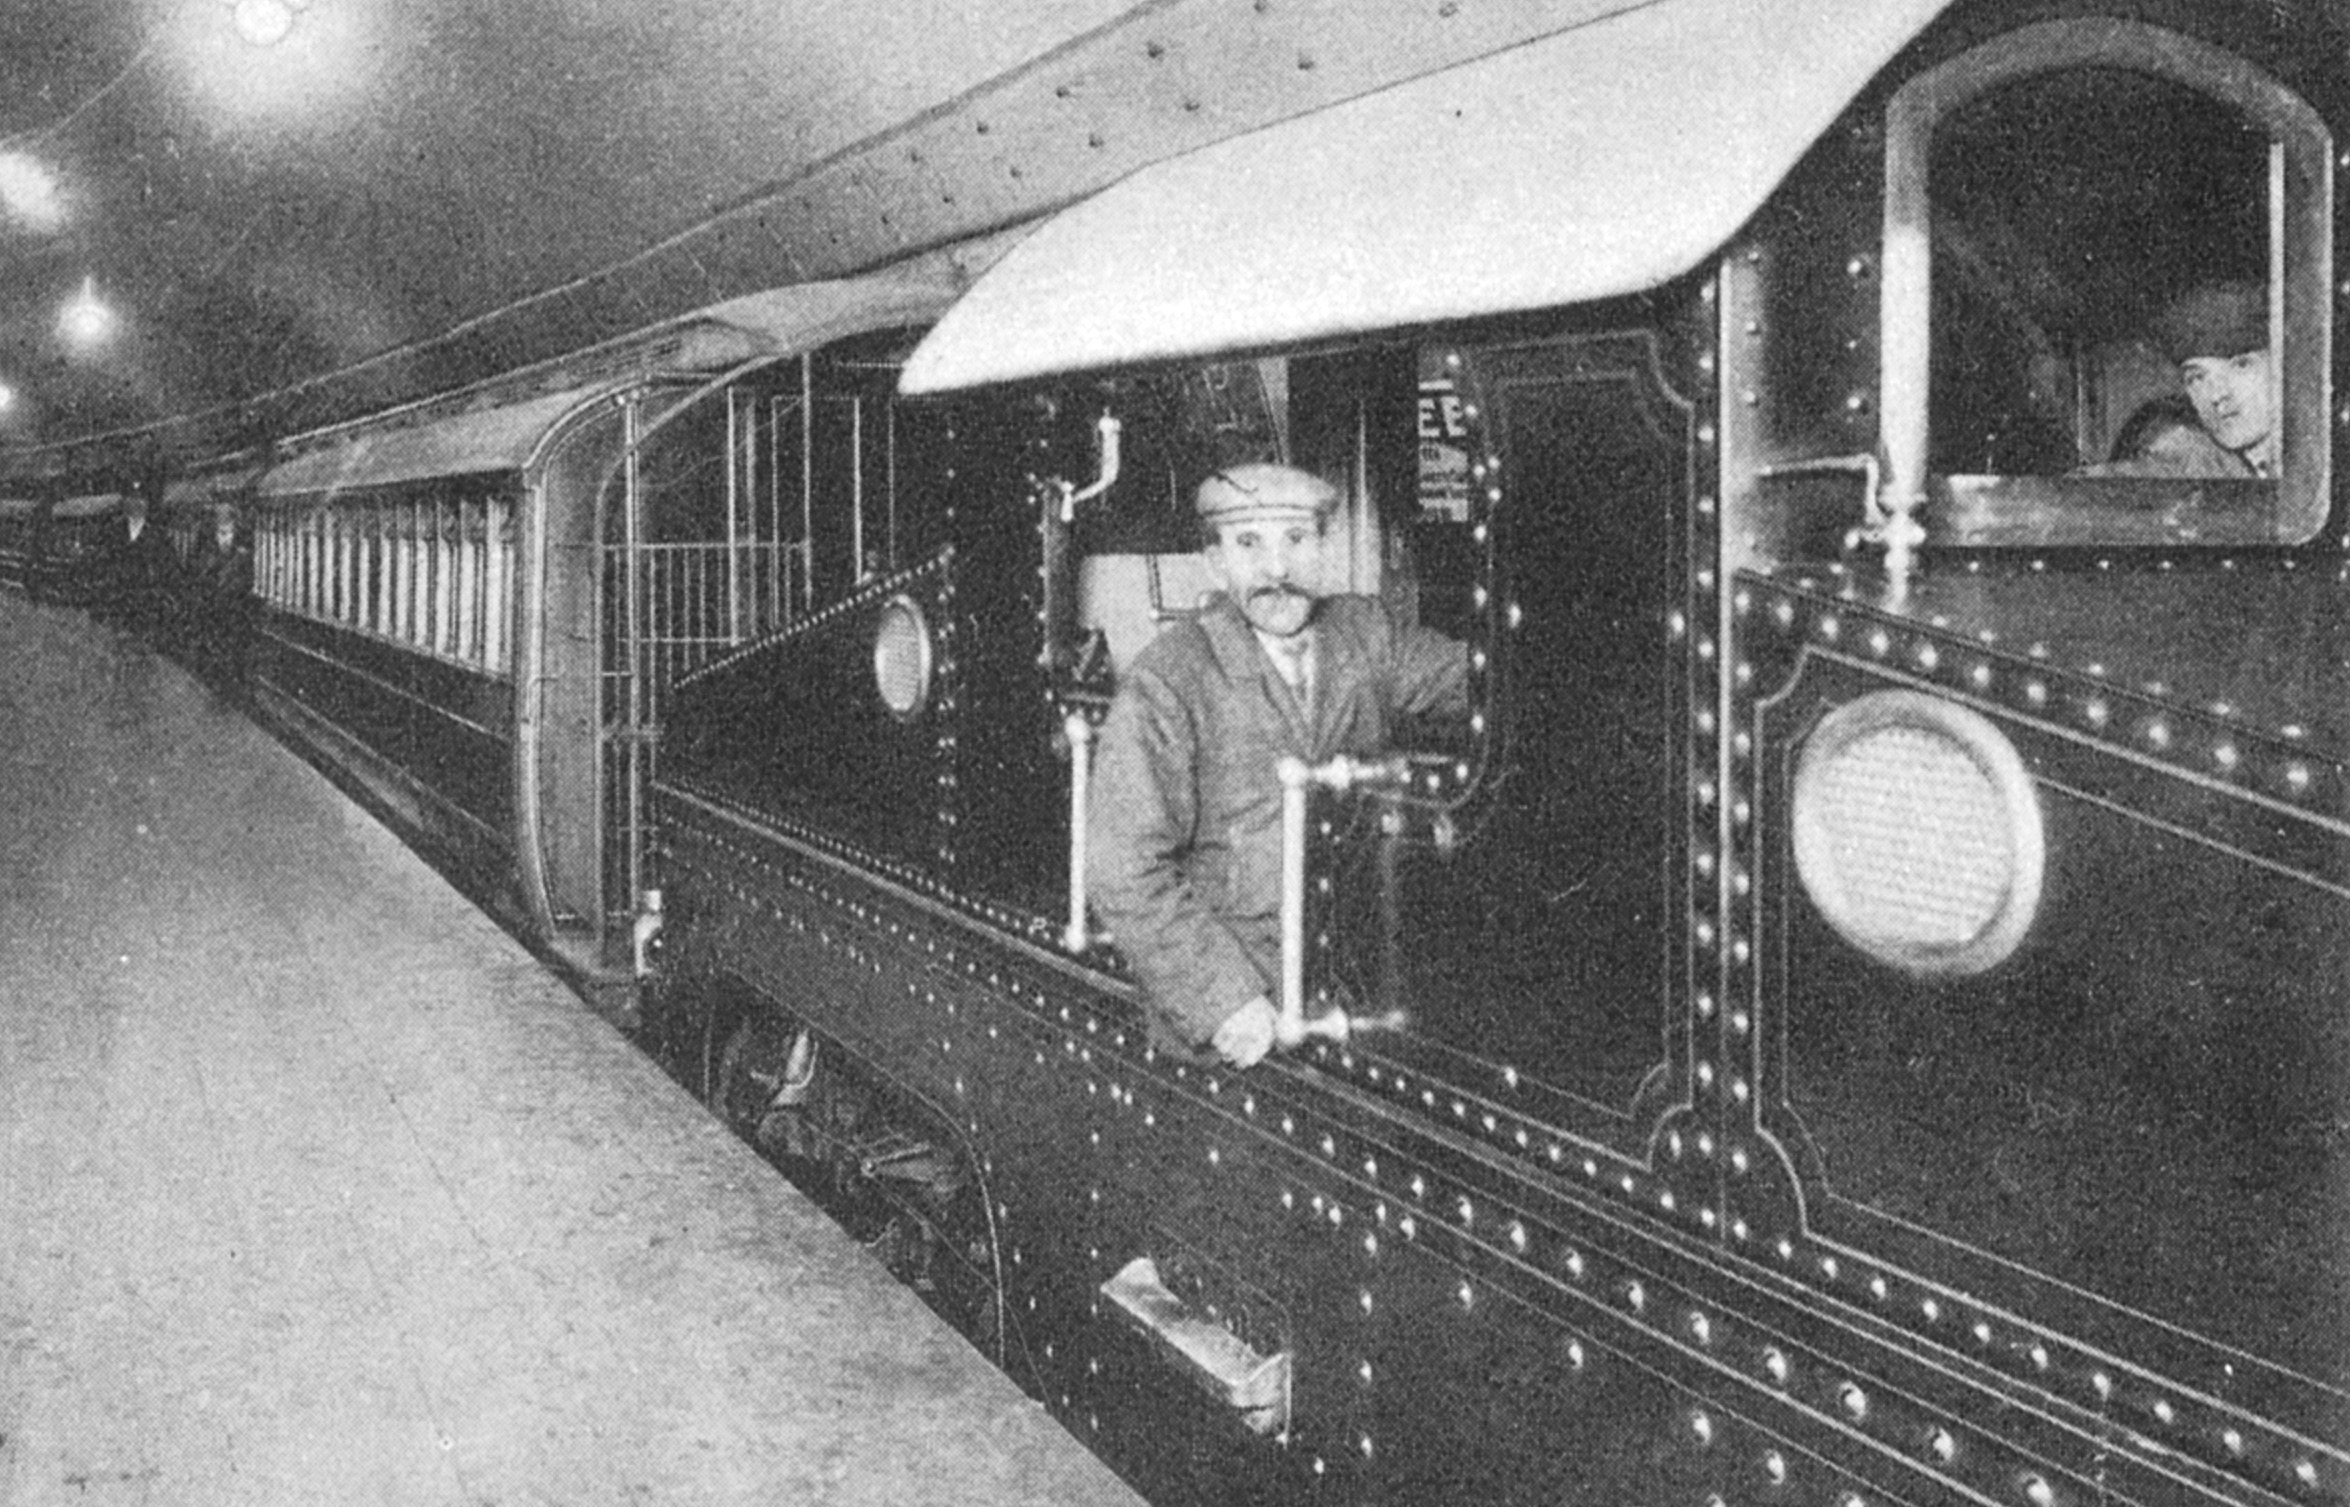 An early- and very noisy- electric locomotive on the Central London Railway